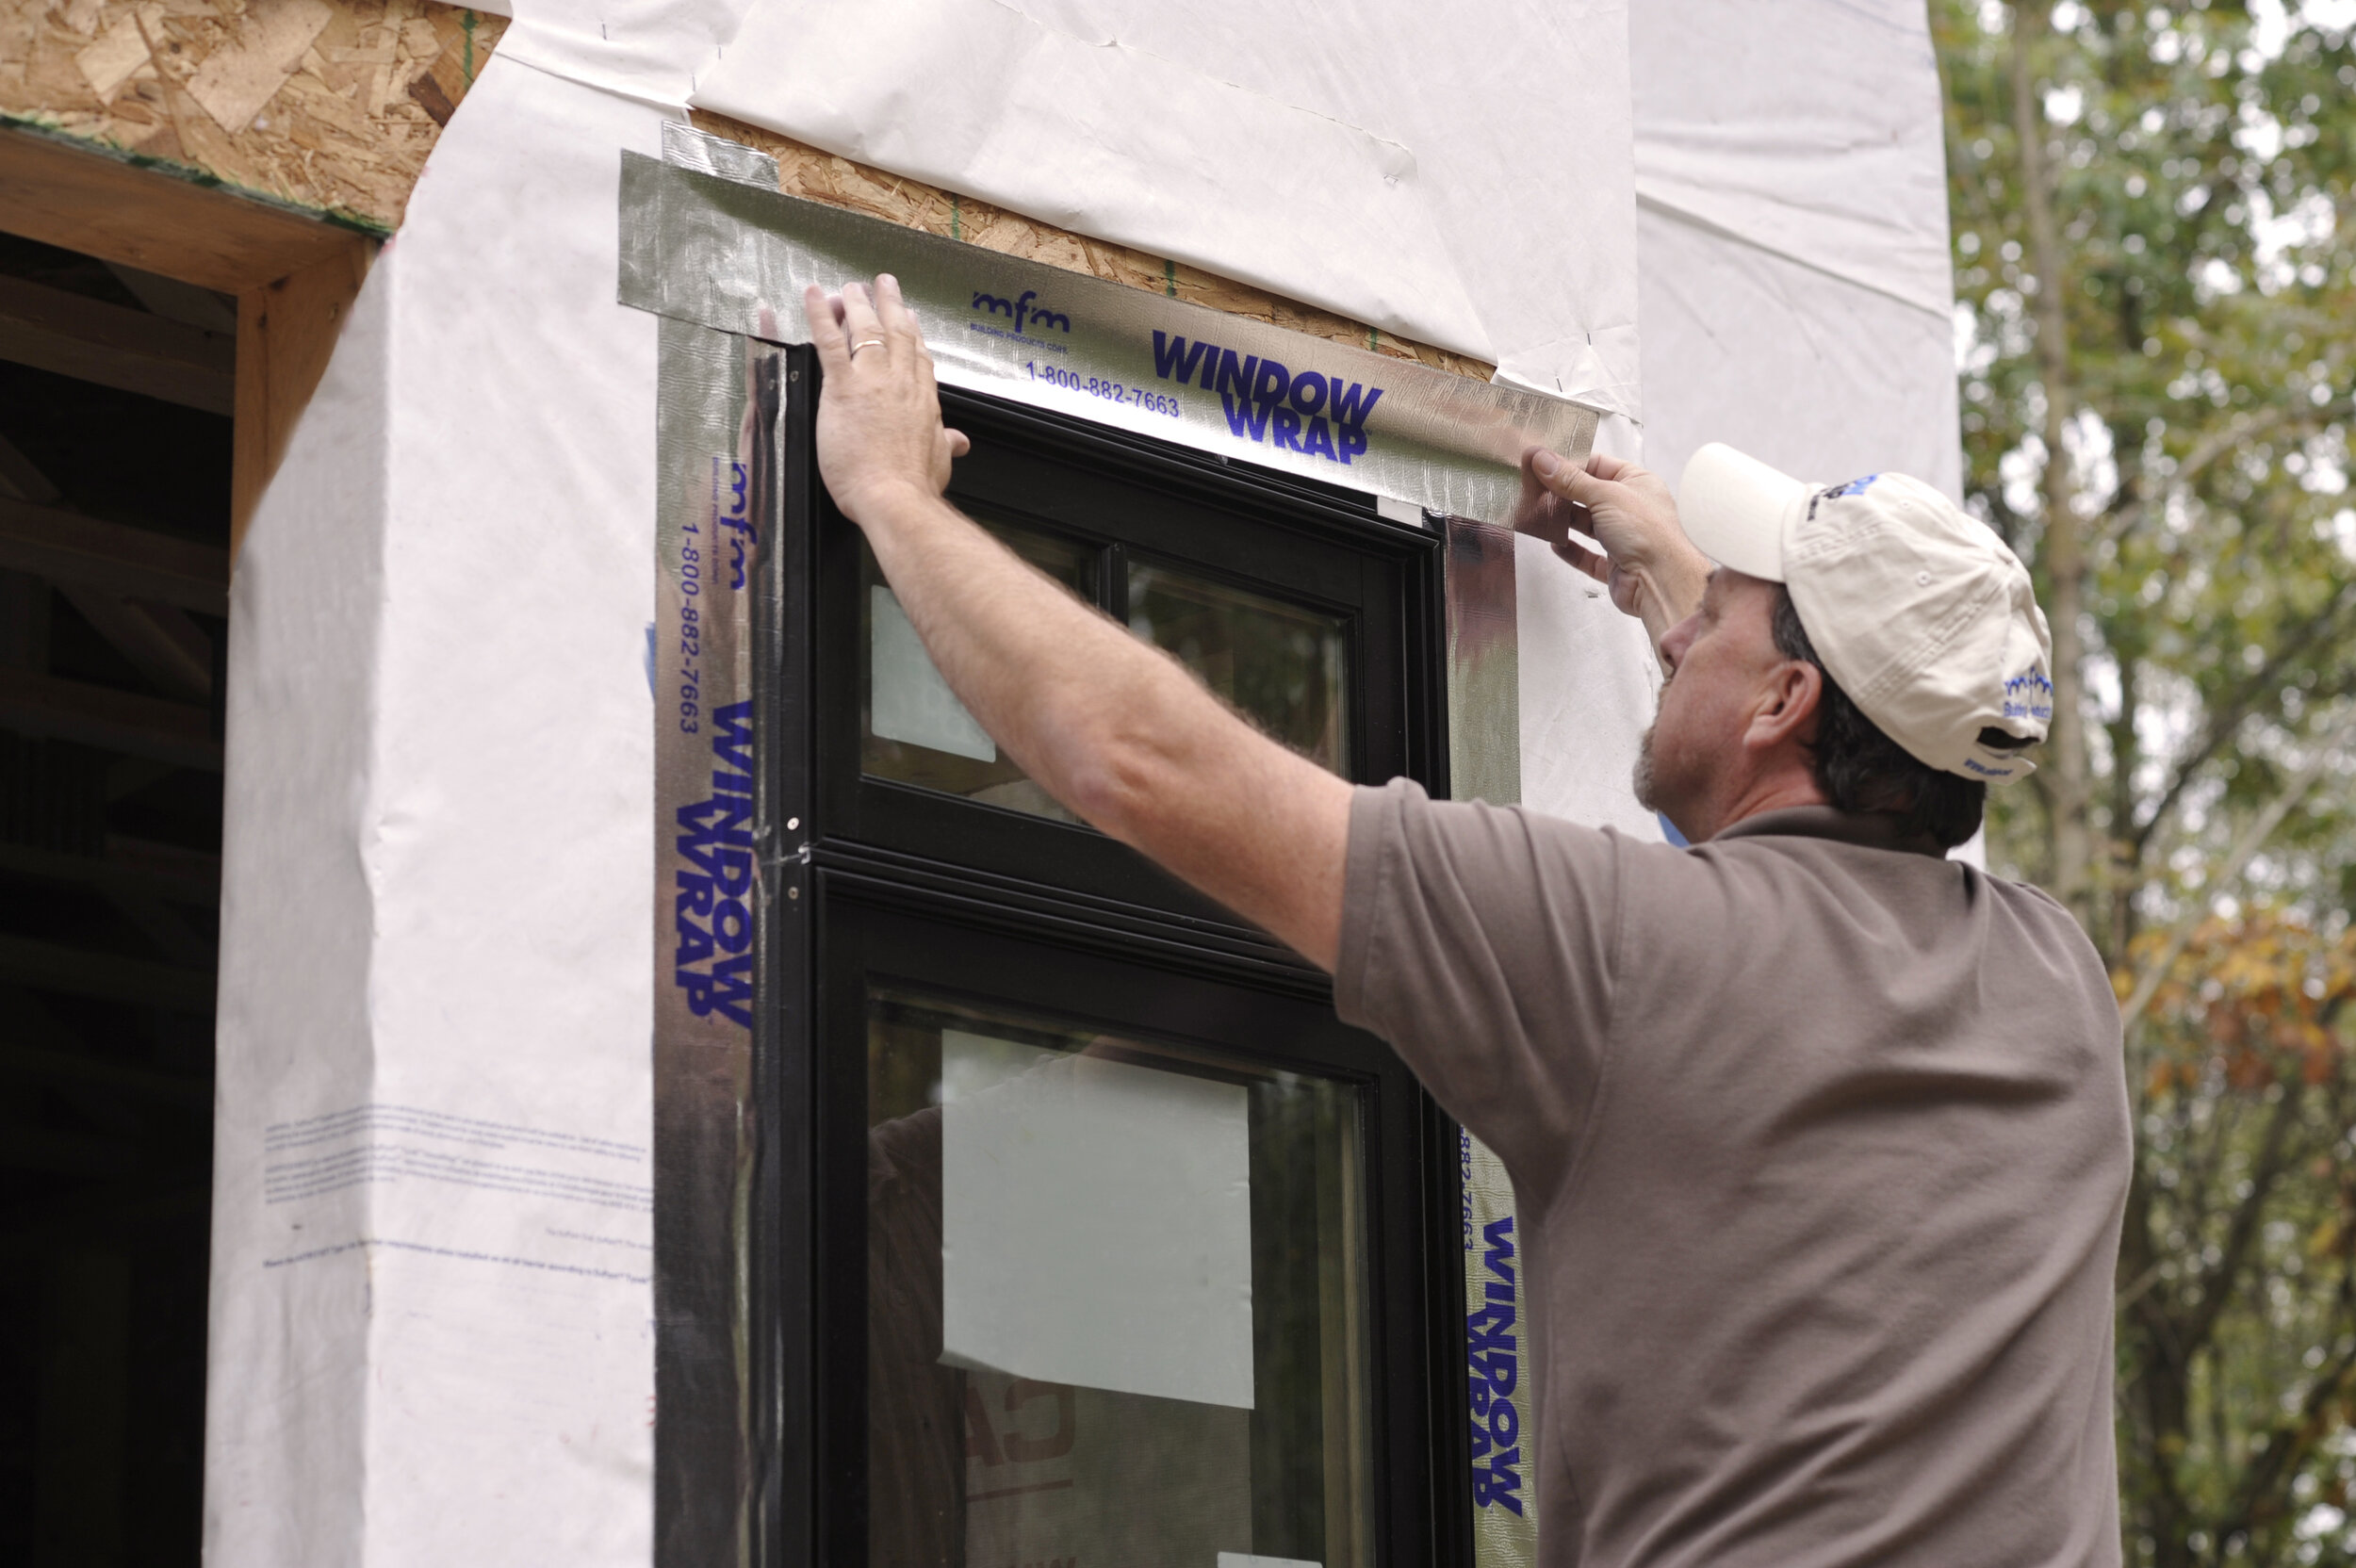 WindowWrap® PSX-20 is AAMA 711 certified to guarantee that the membrane meets and/or exceeds the necessary specifications for a proper window flashing membrane.